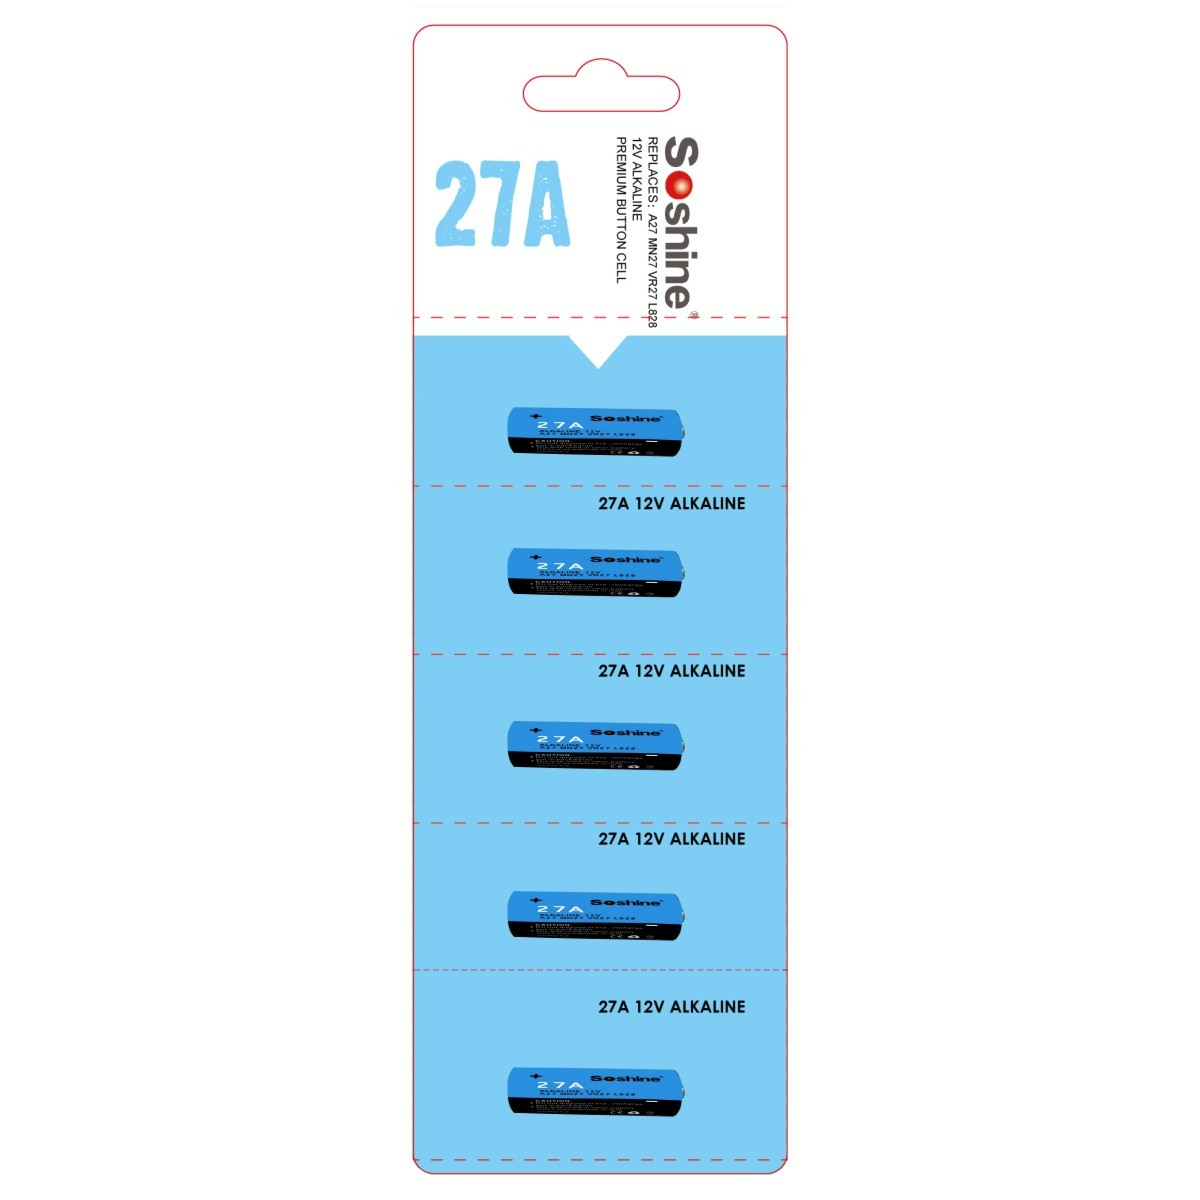 Soshine 27A  Alkaline Battery 12V 27A  A27 MN27 VR27 L828 (Pack of 5)